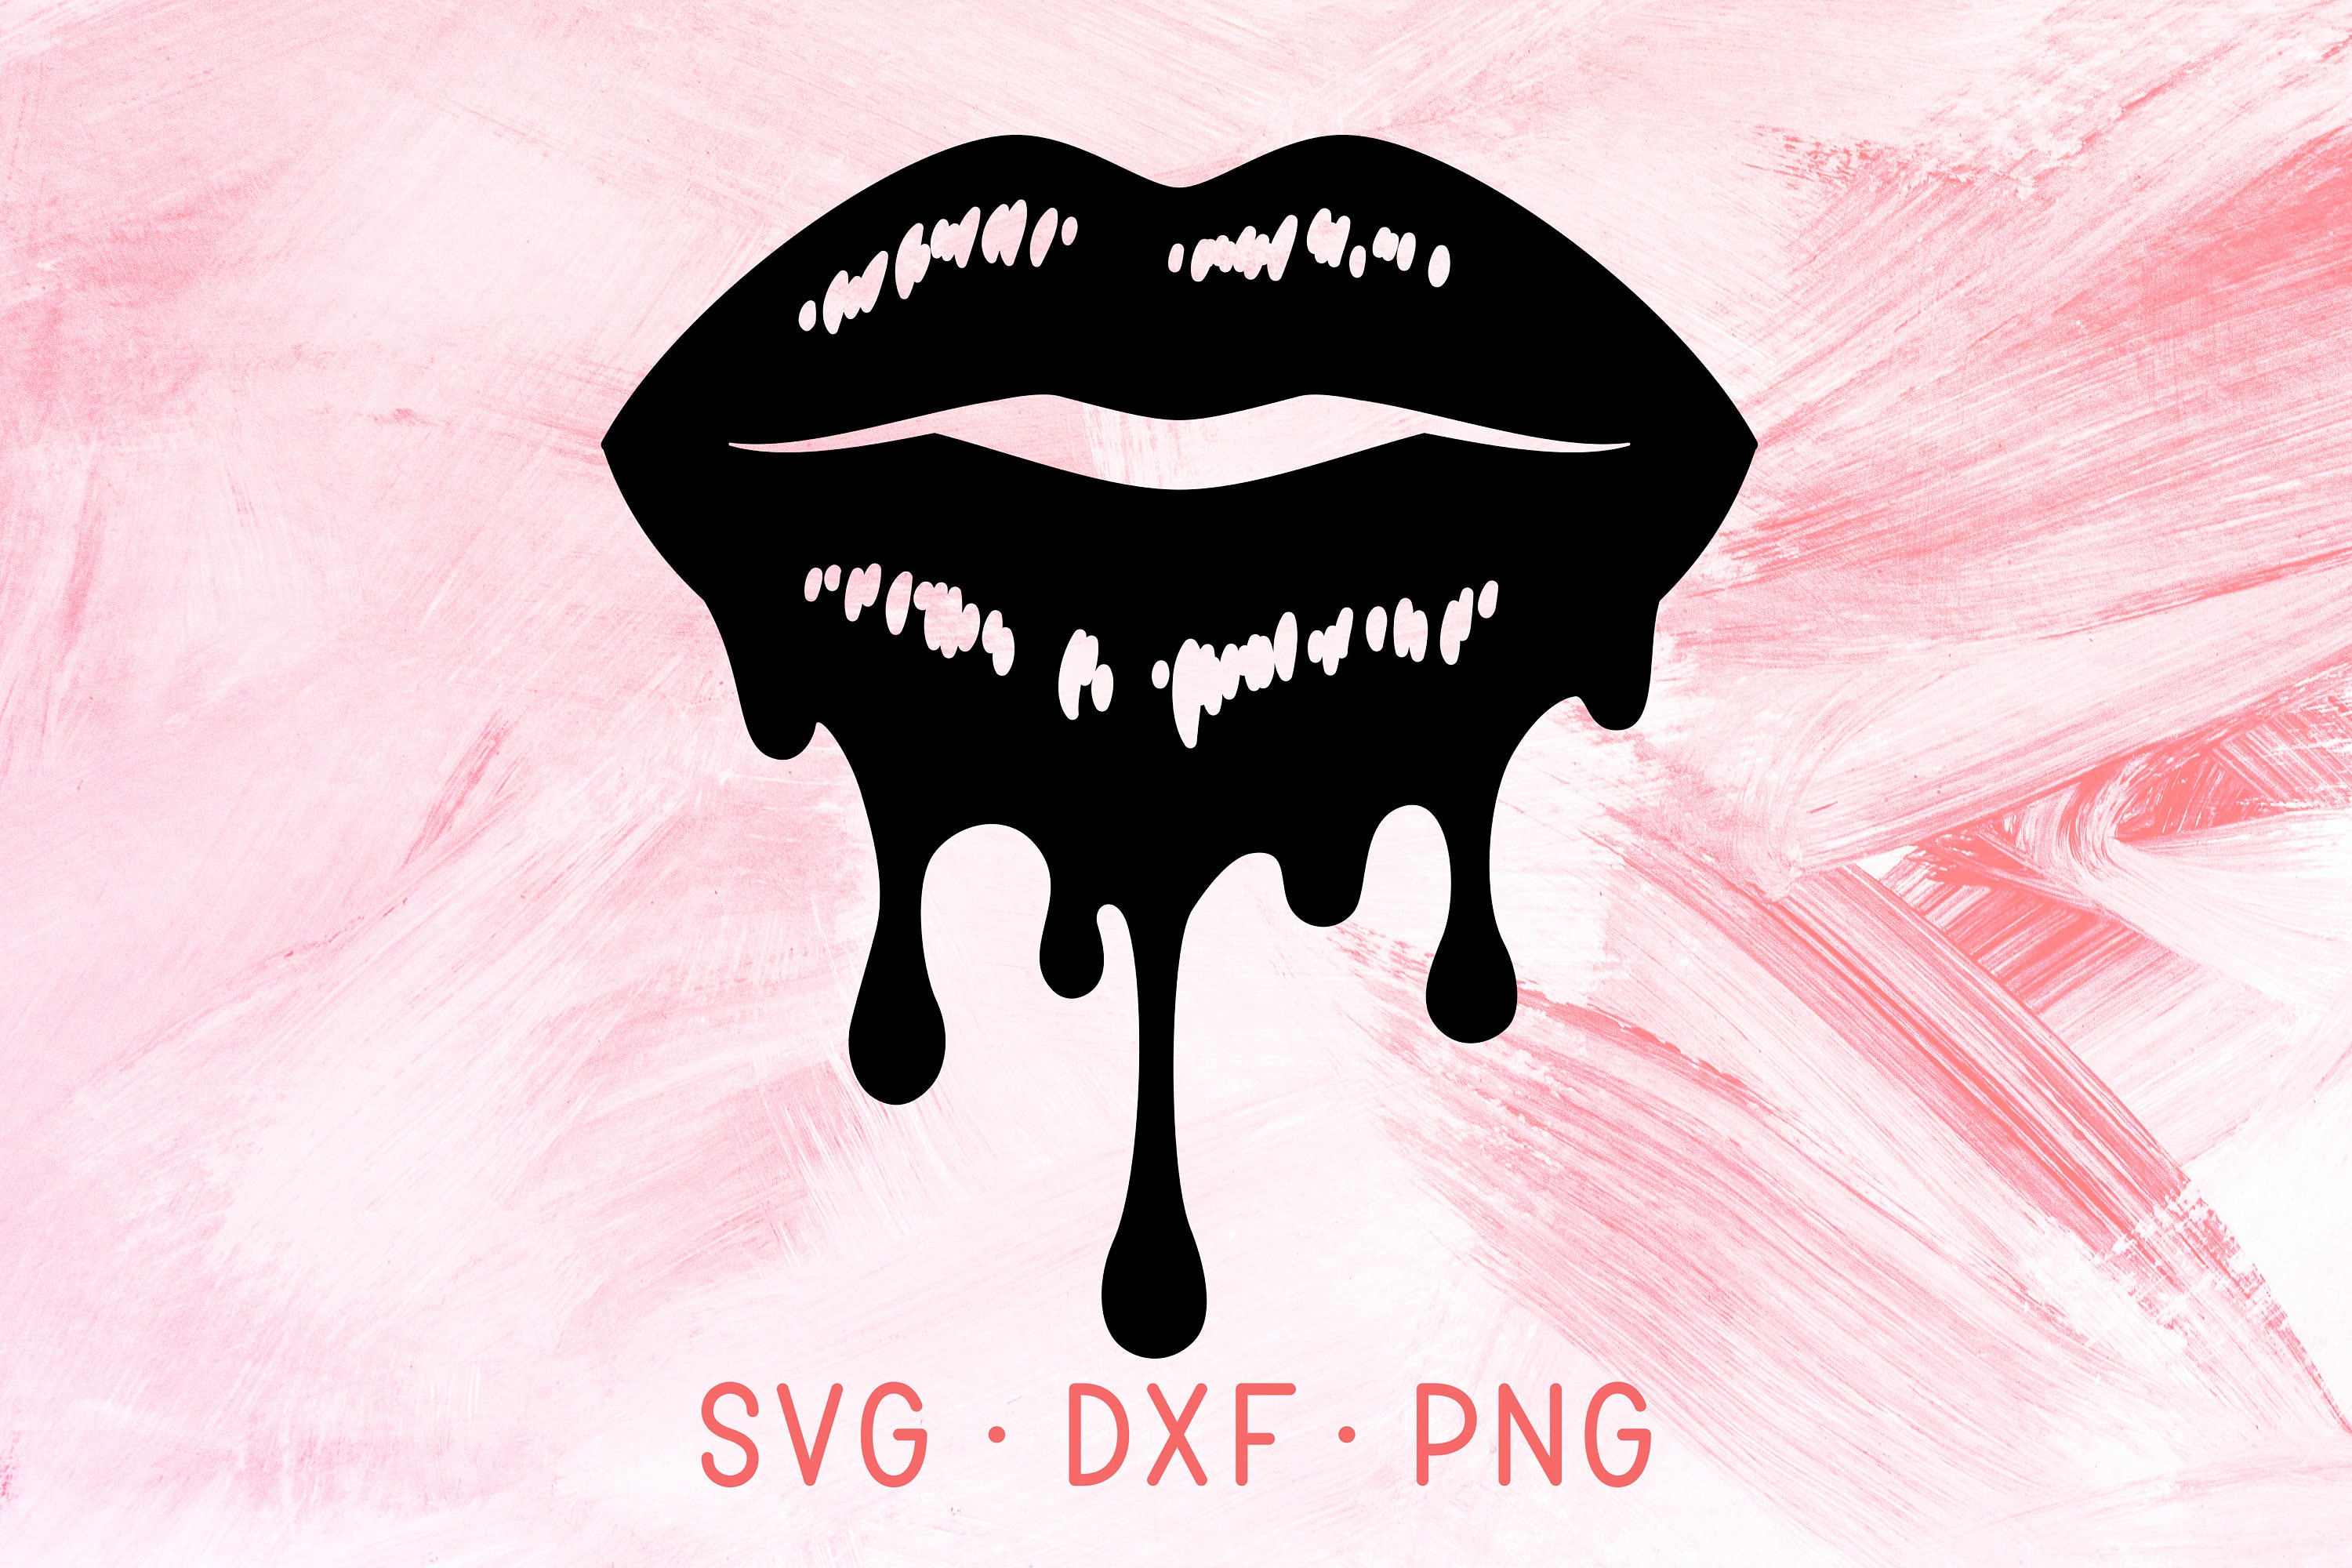 Dripping Lips Svg Dxf Png Files For Cricut Dripping Lip Gloss Etsy